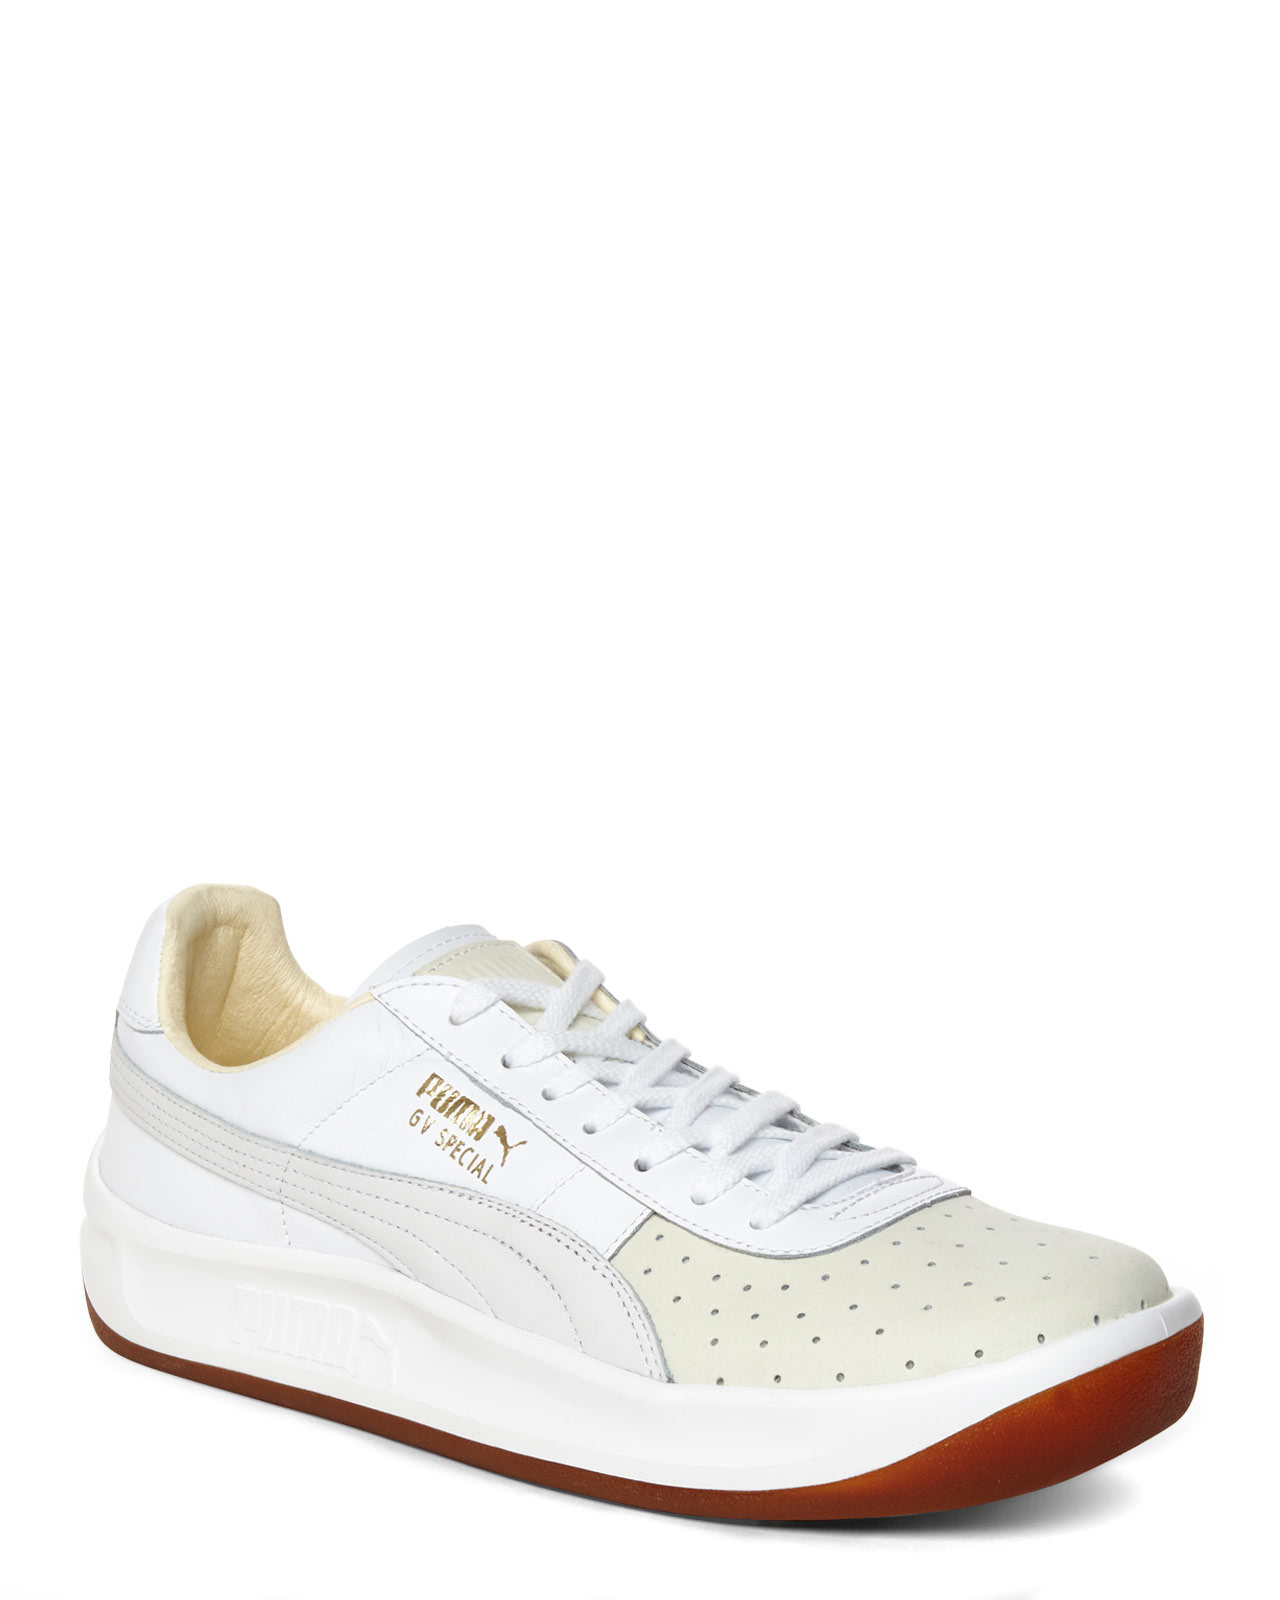 34123f98e6a7 Lyst - PUMA White Gv Special Exotic Sneakers in White for Men